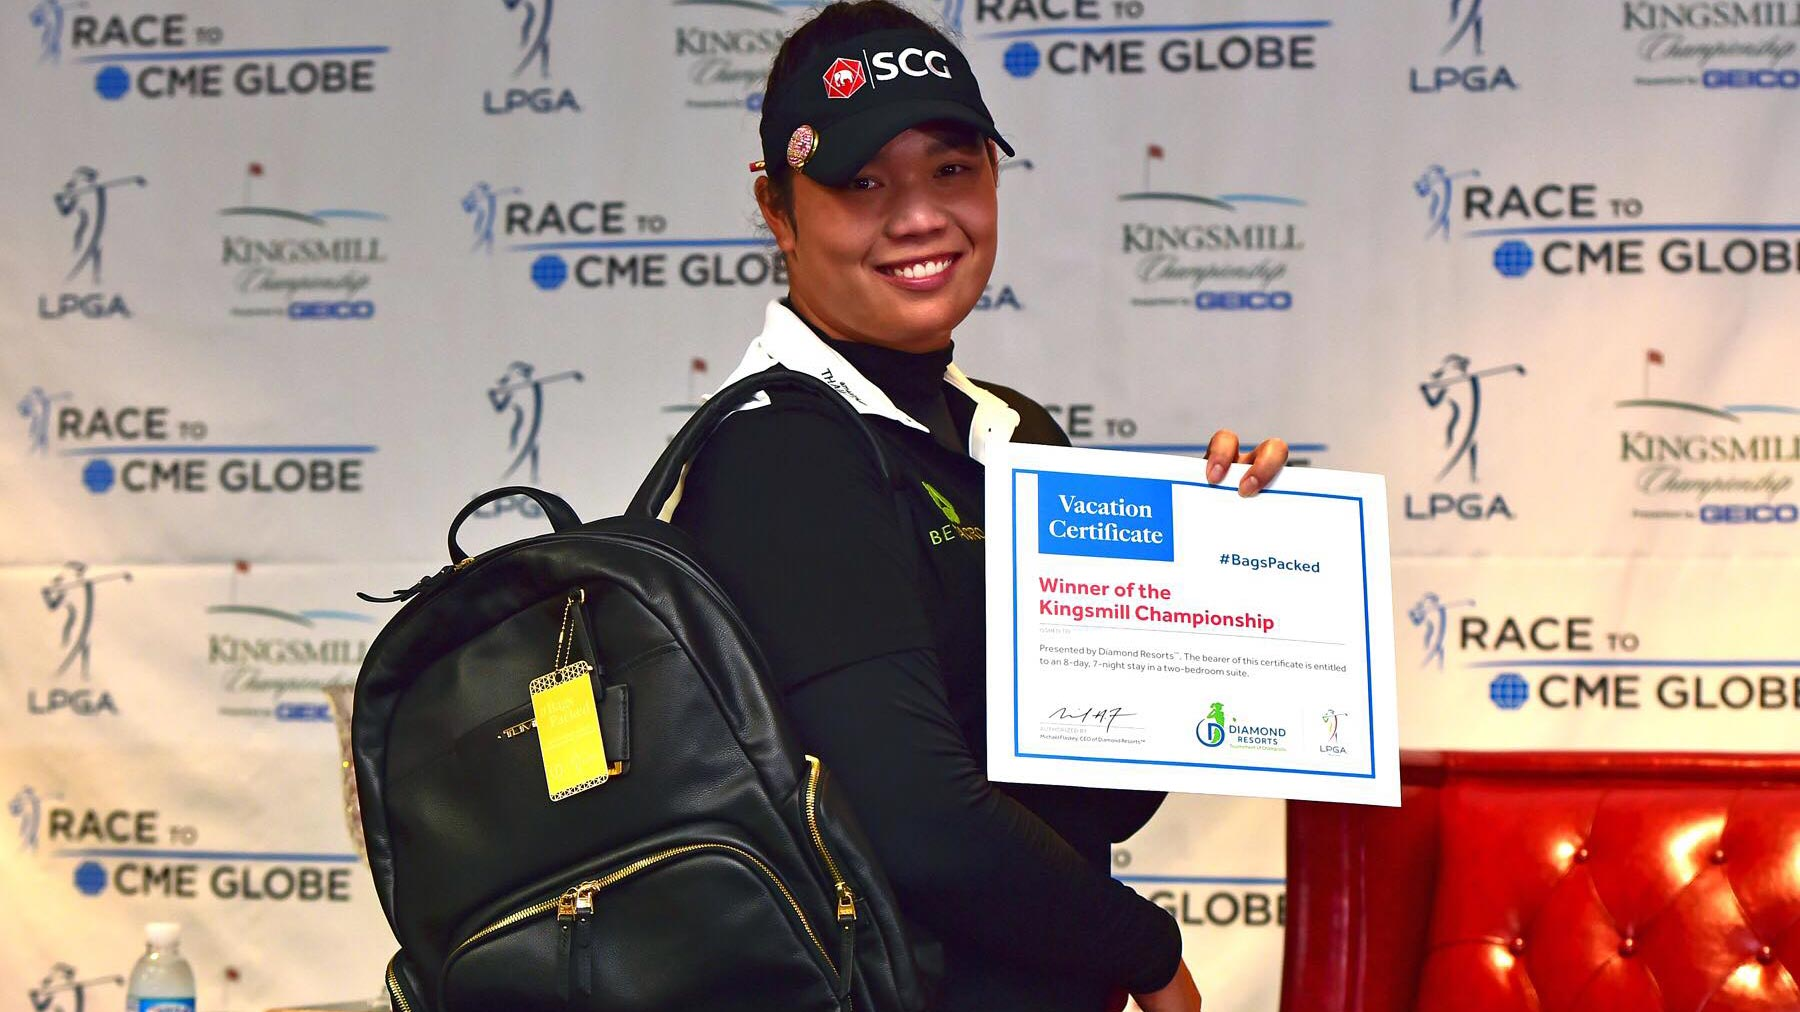 Ariya Jutanugarn has her #BagsPacked for the 2019 Diamond Resorts Tournament of Champions after her win at the 2018 Kingsmill Championship presented by GEICO